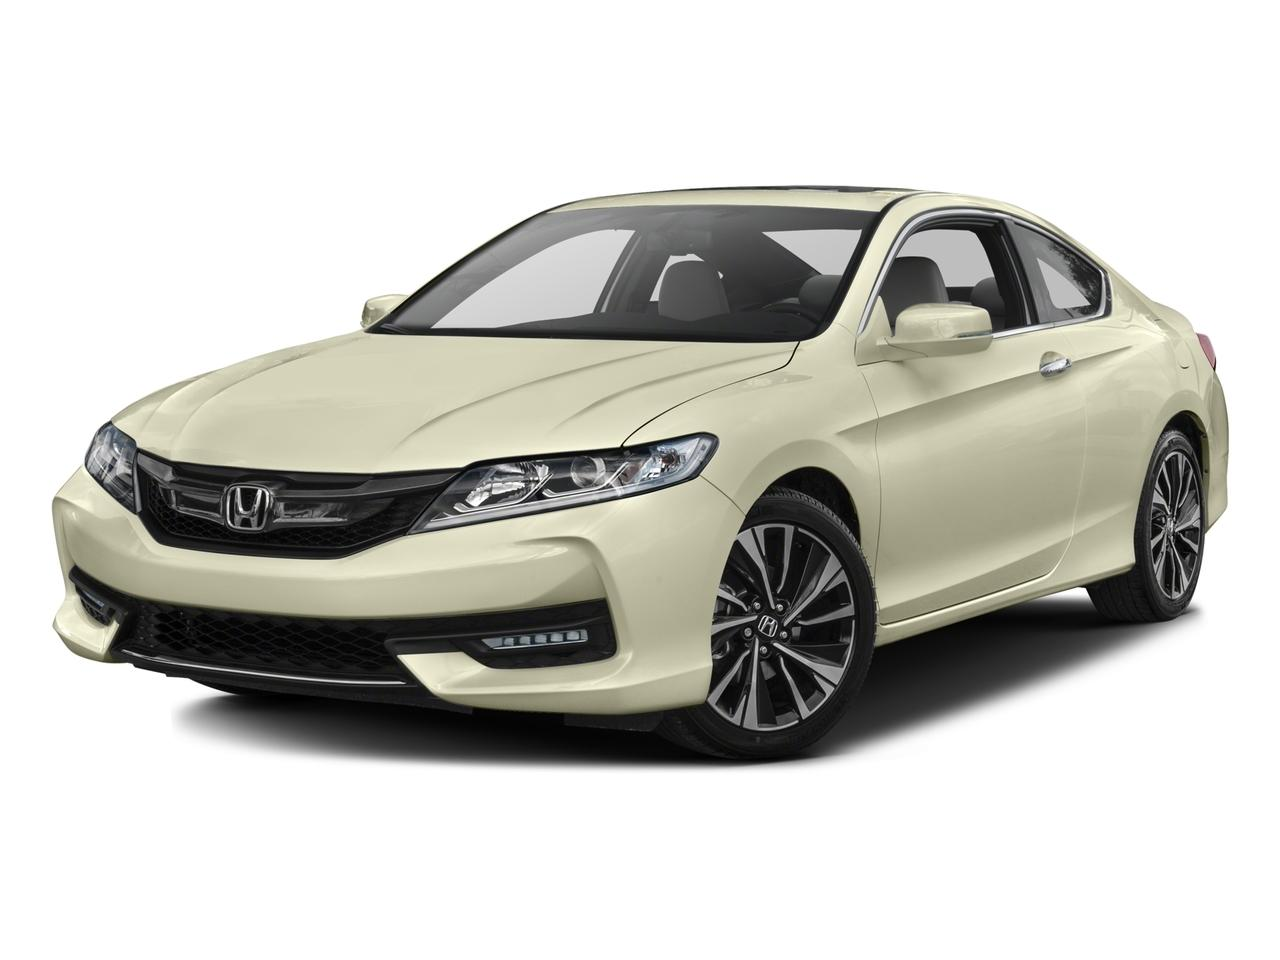 2016 Honda Accord Coupe Vehicle Photo in Portland, OR 97225